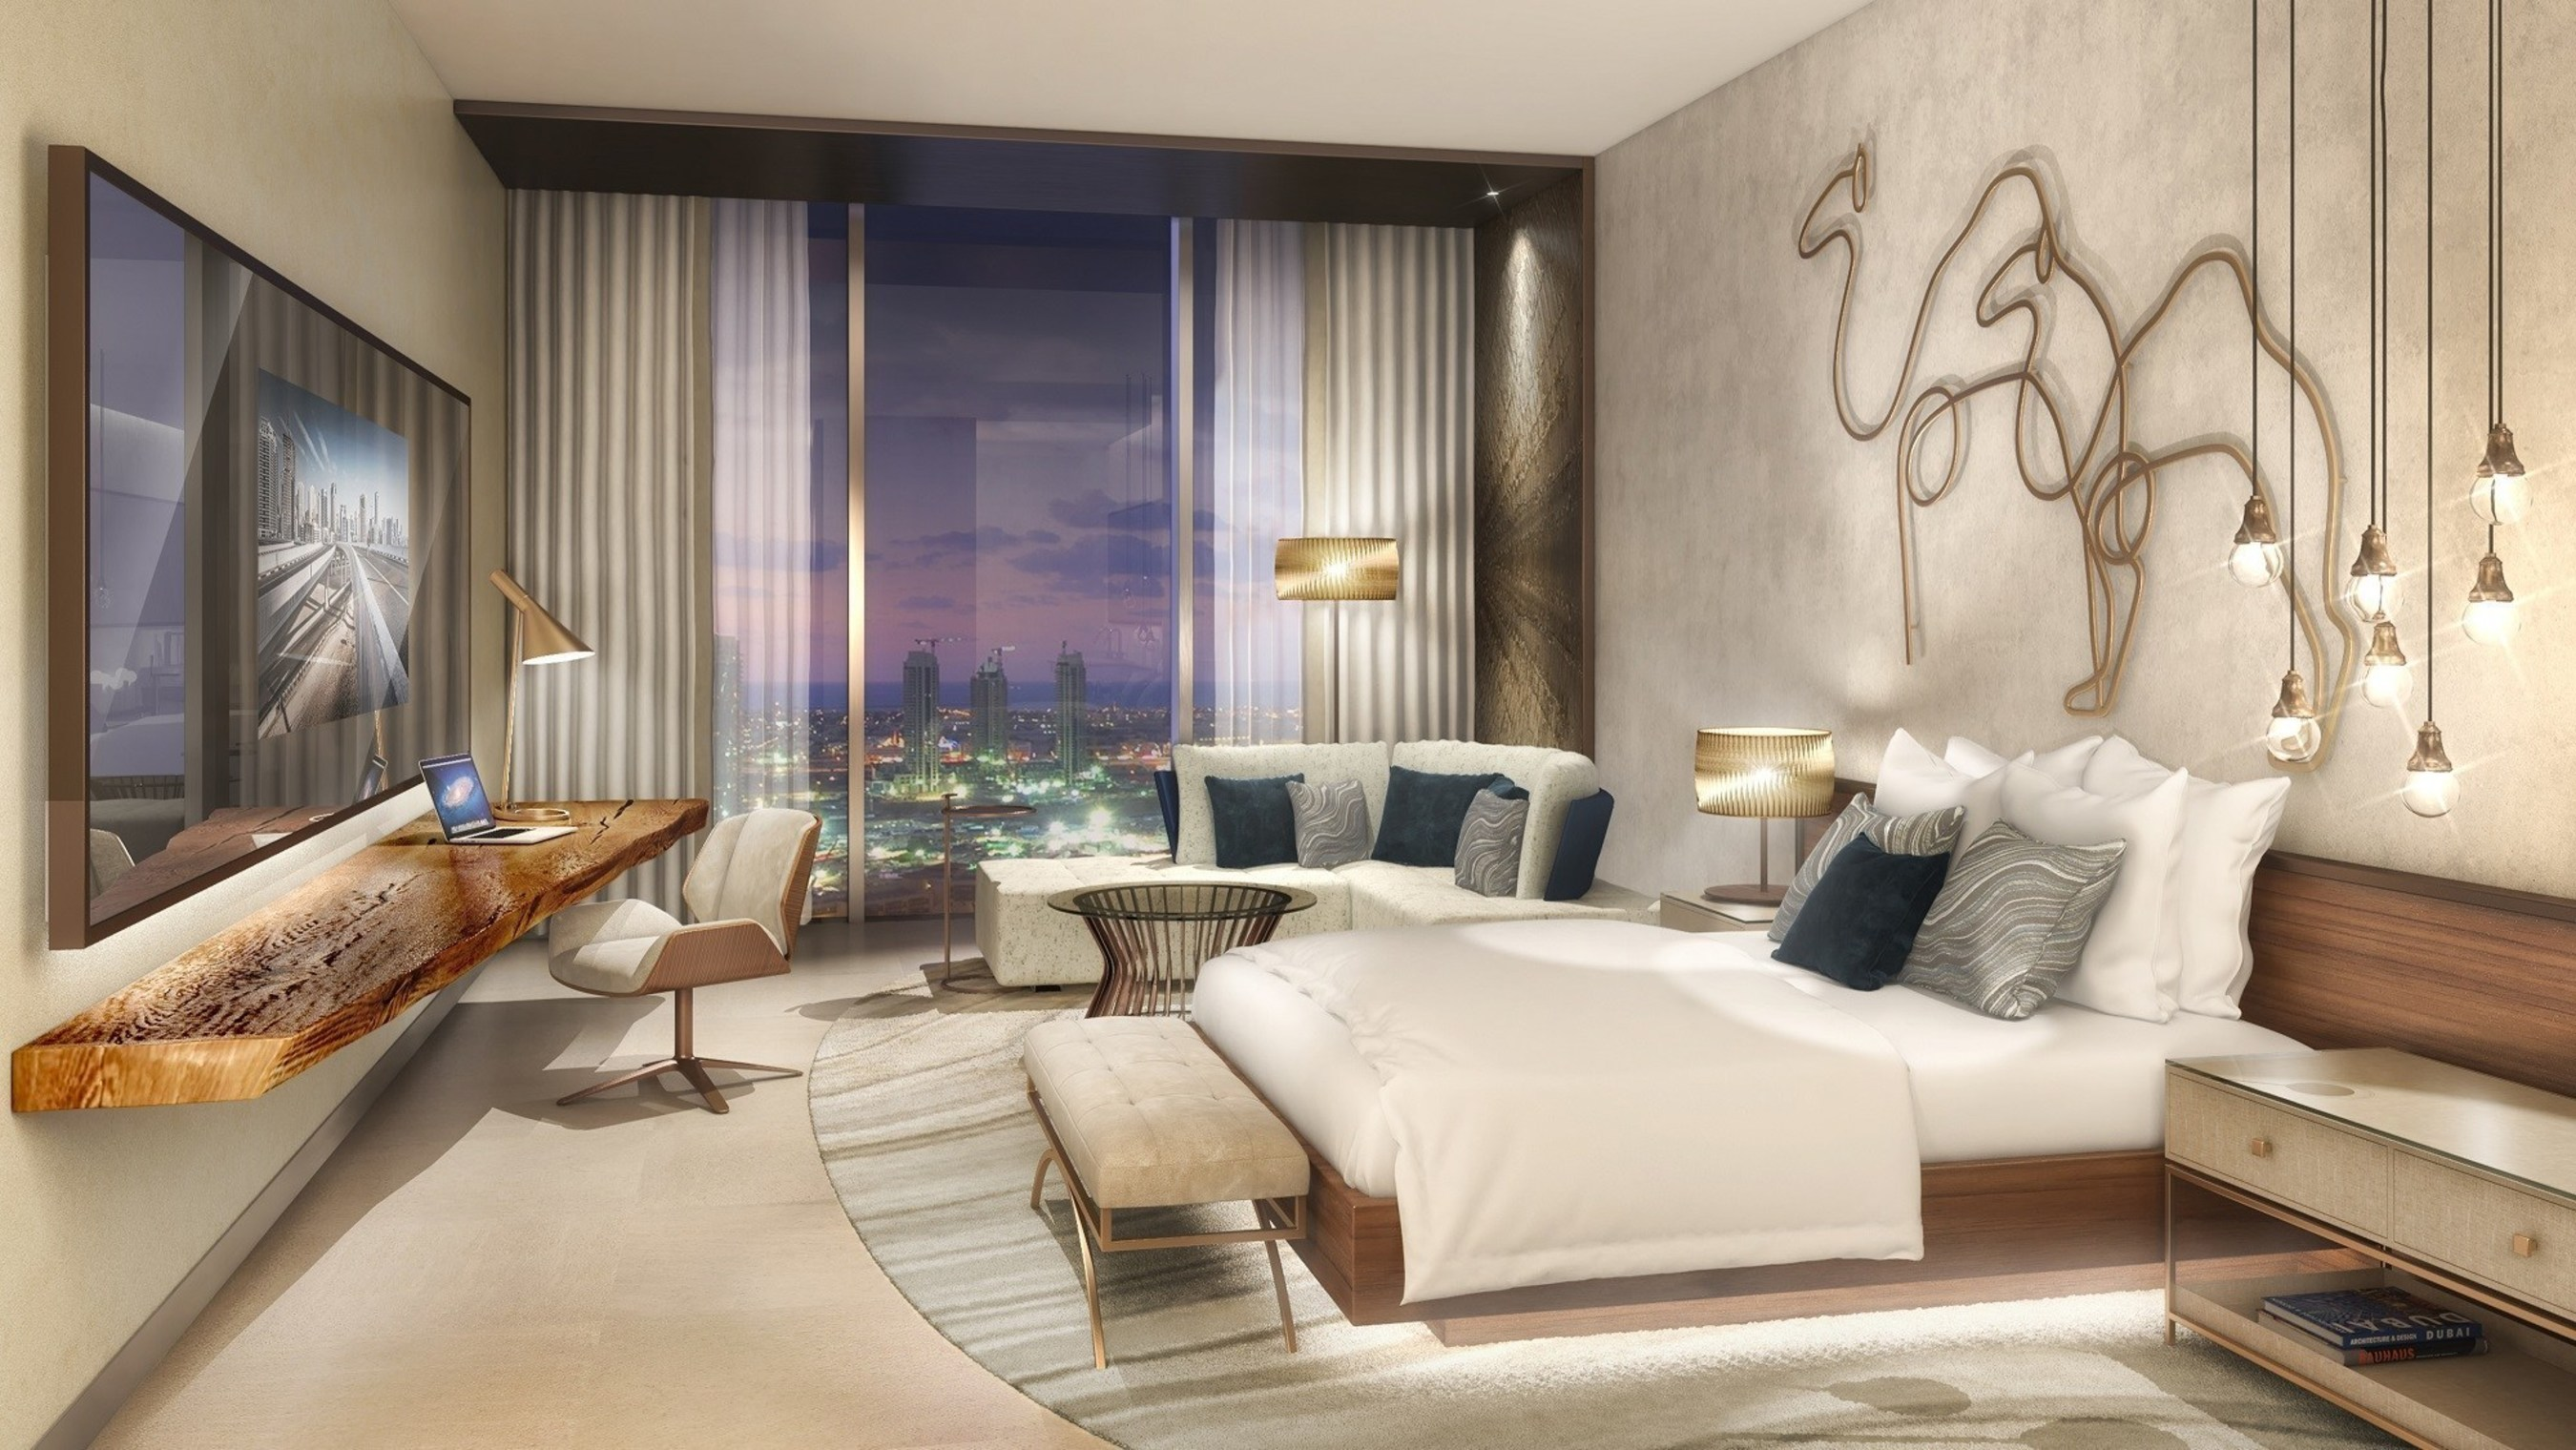 Marriott International Set to Open the First Renaissance Hotel in Dubai at the end of 2016.